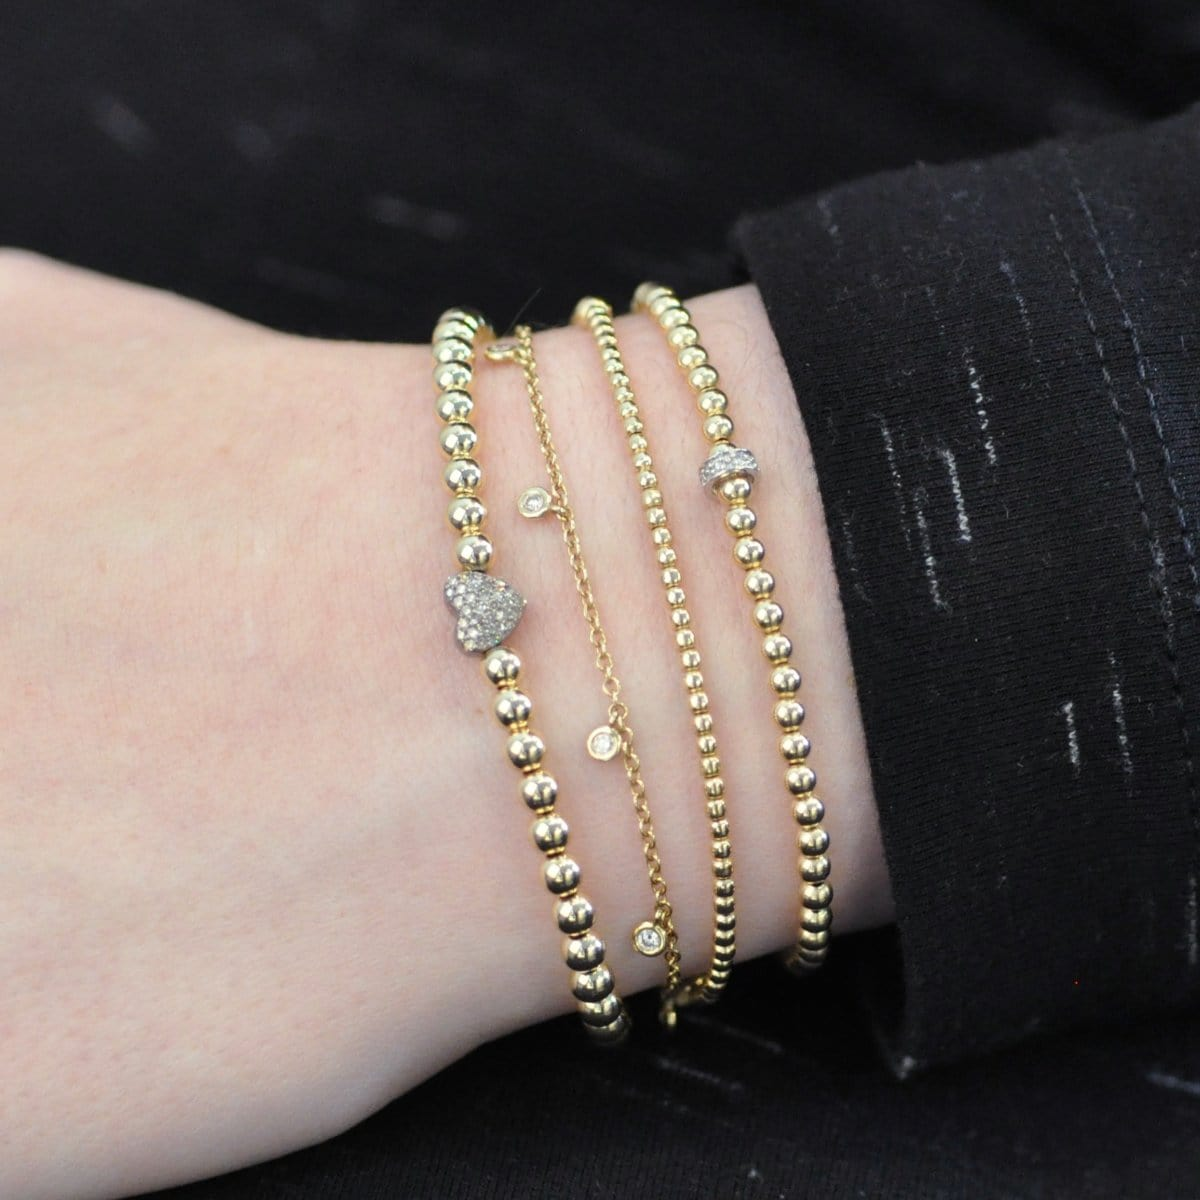 3mm Diamond Rondelle Yellow Gold Round Bead Bracelet